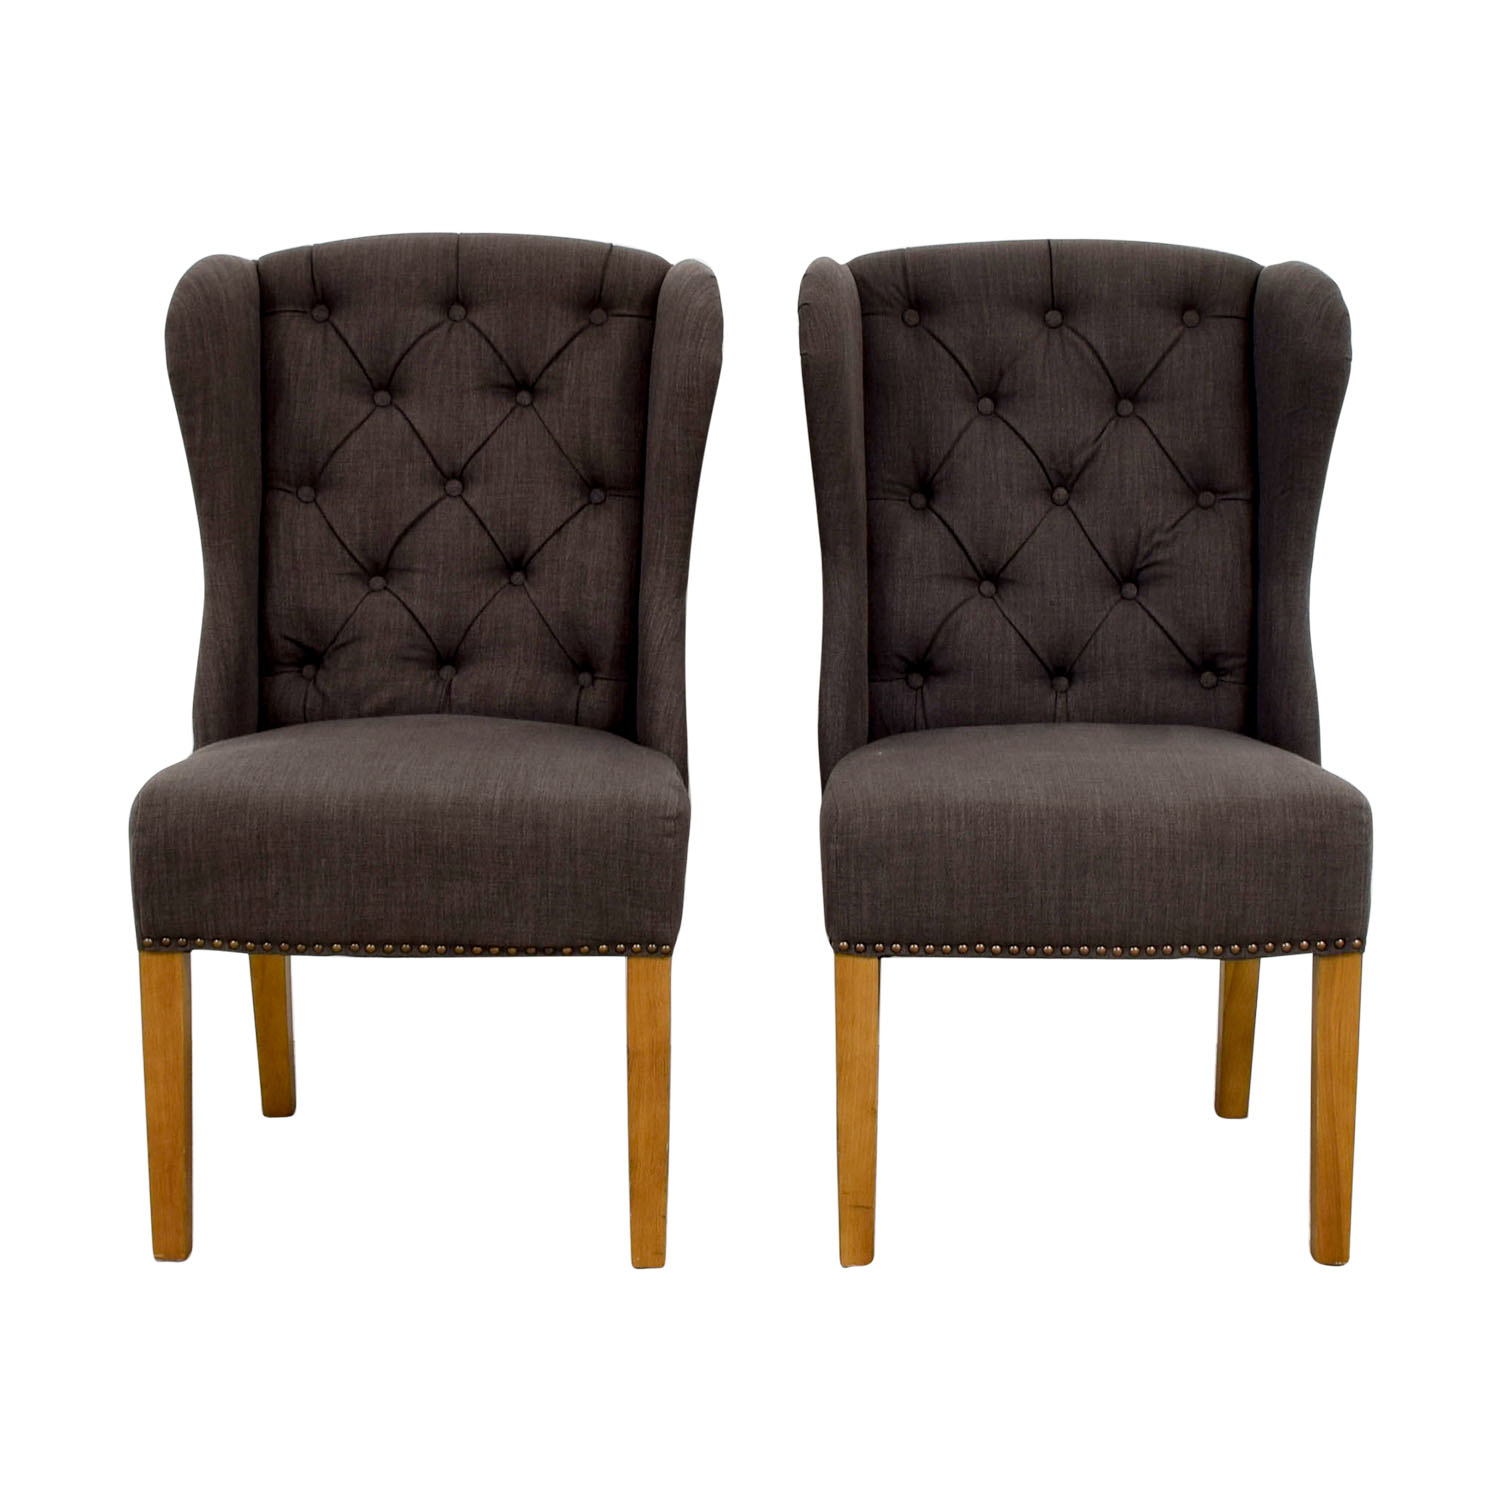 shop Greyson Greyson Grey Tufted Chairs online